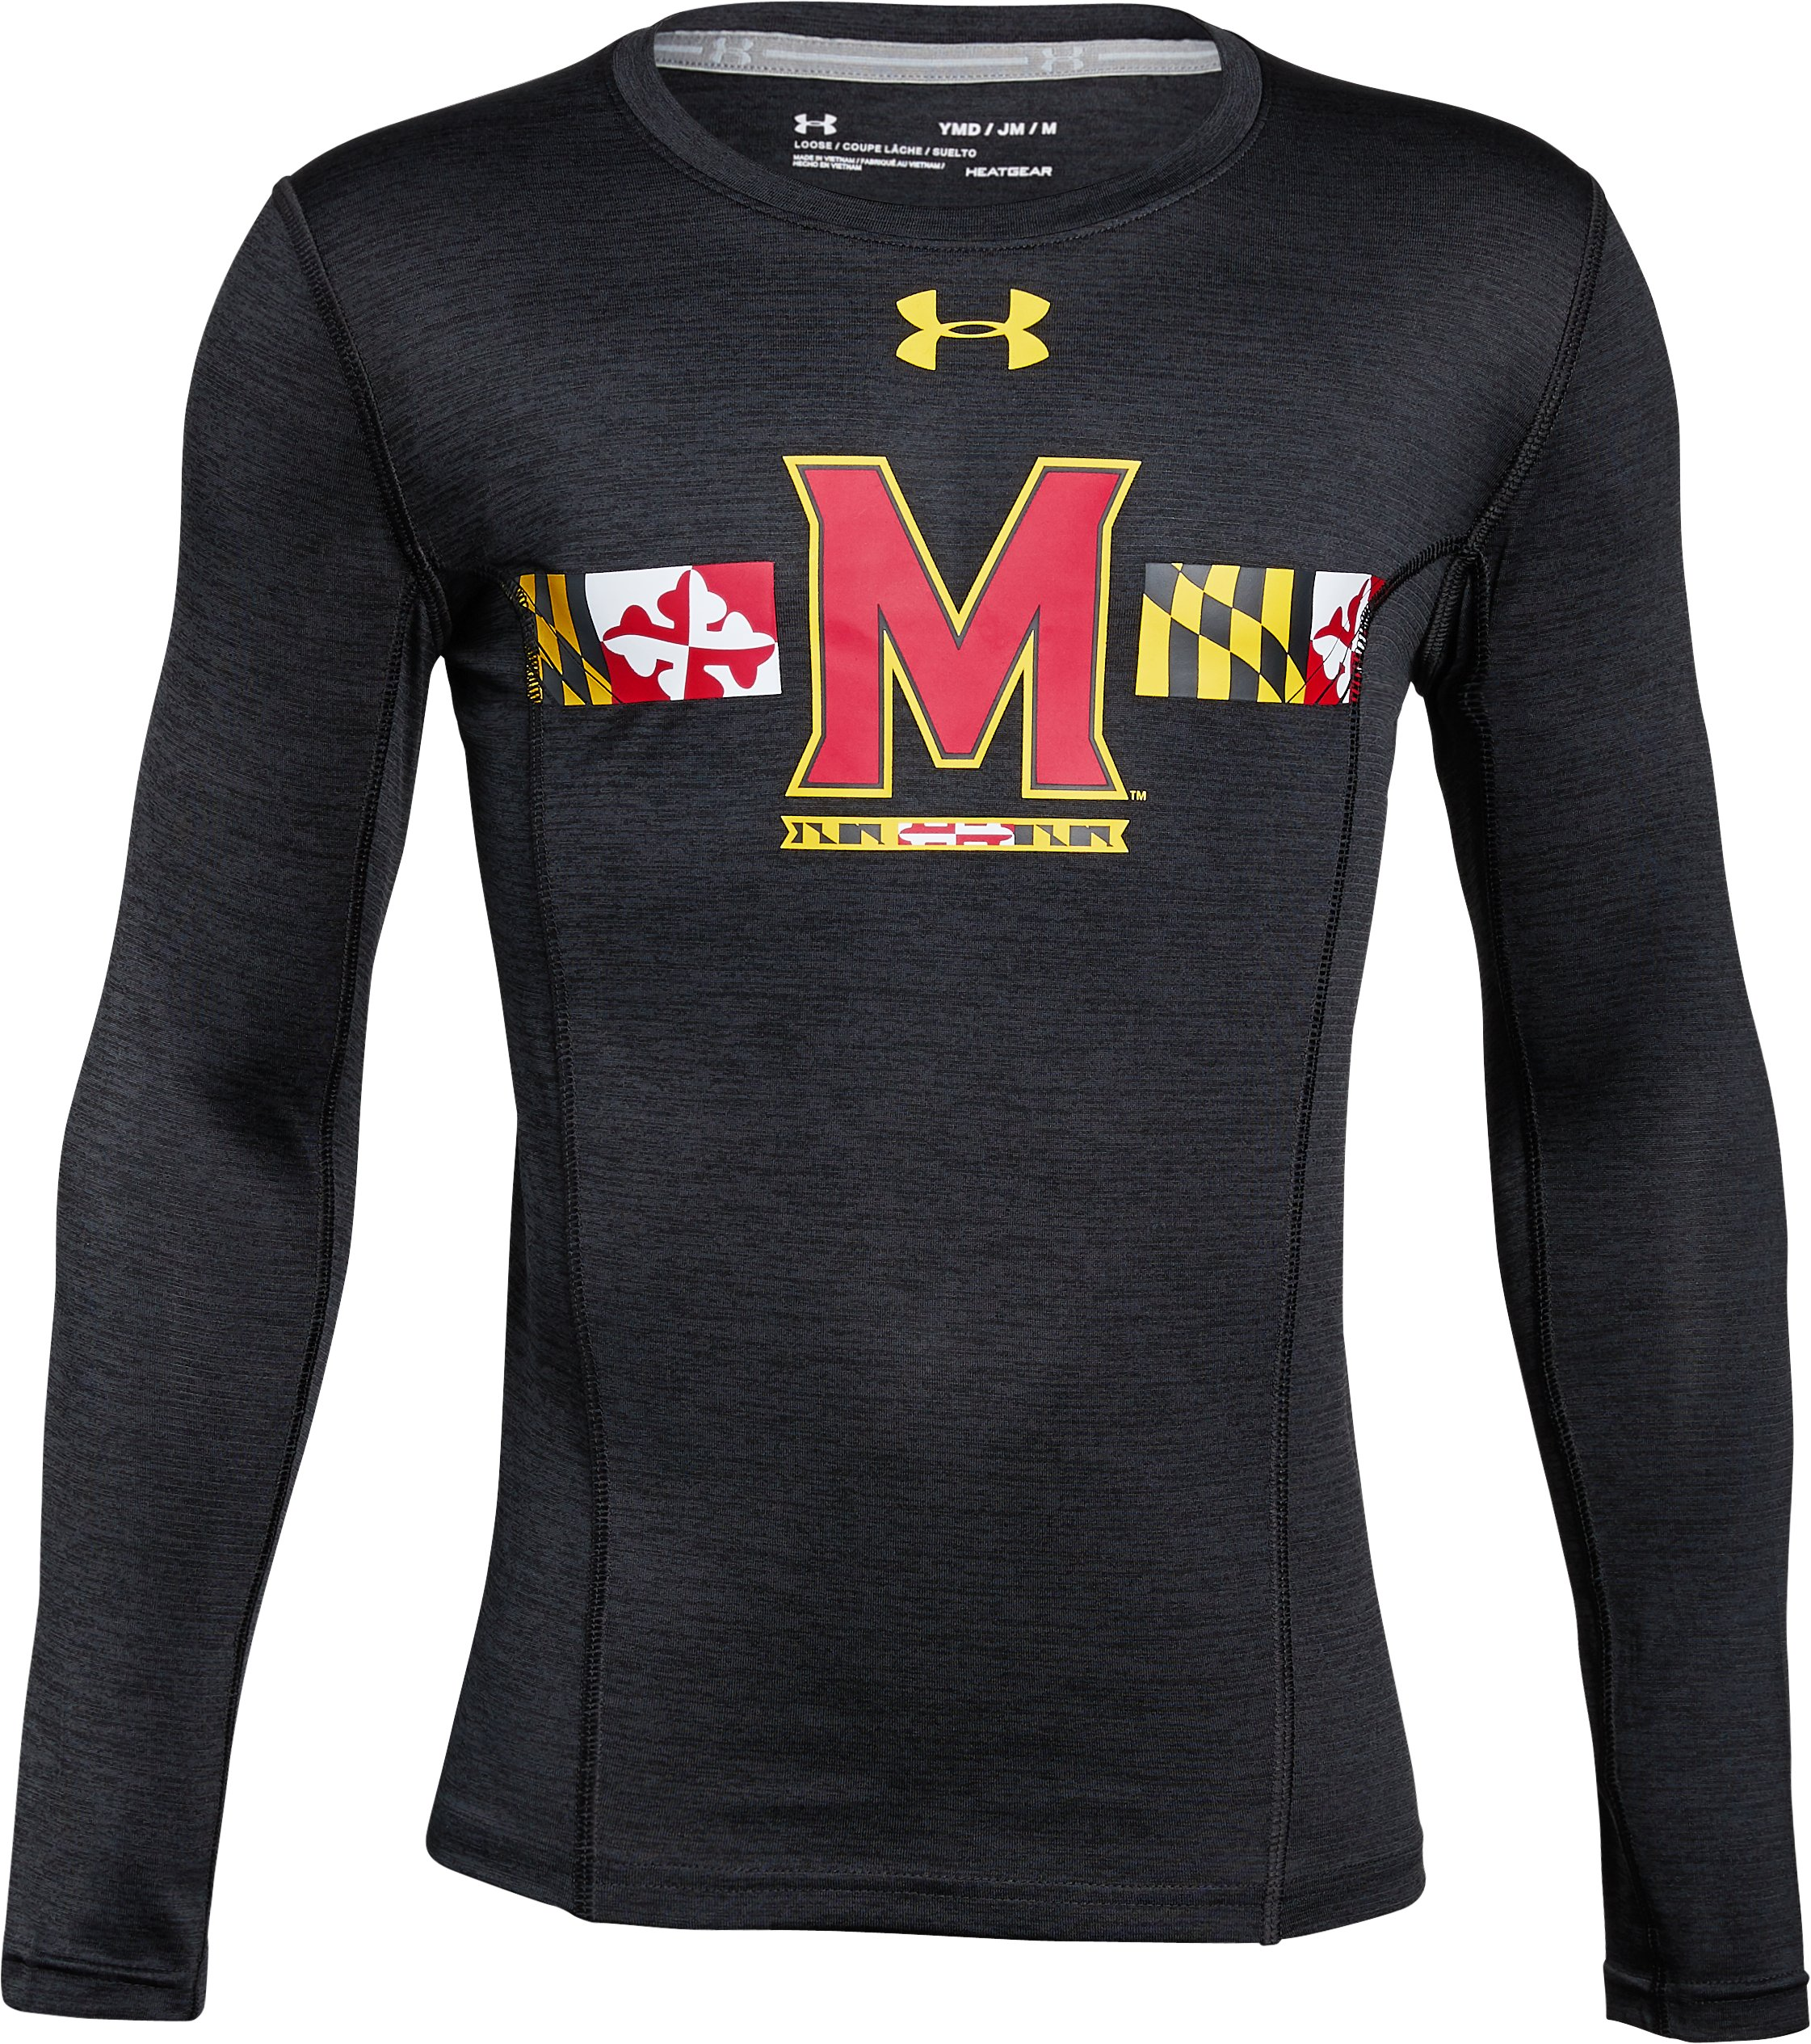 Boys' Maryland Long Sleeve Training T-Shirt, Black